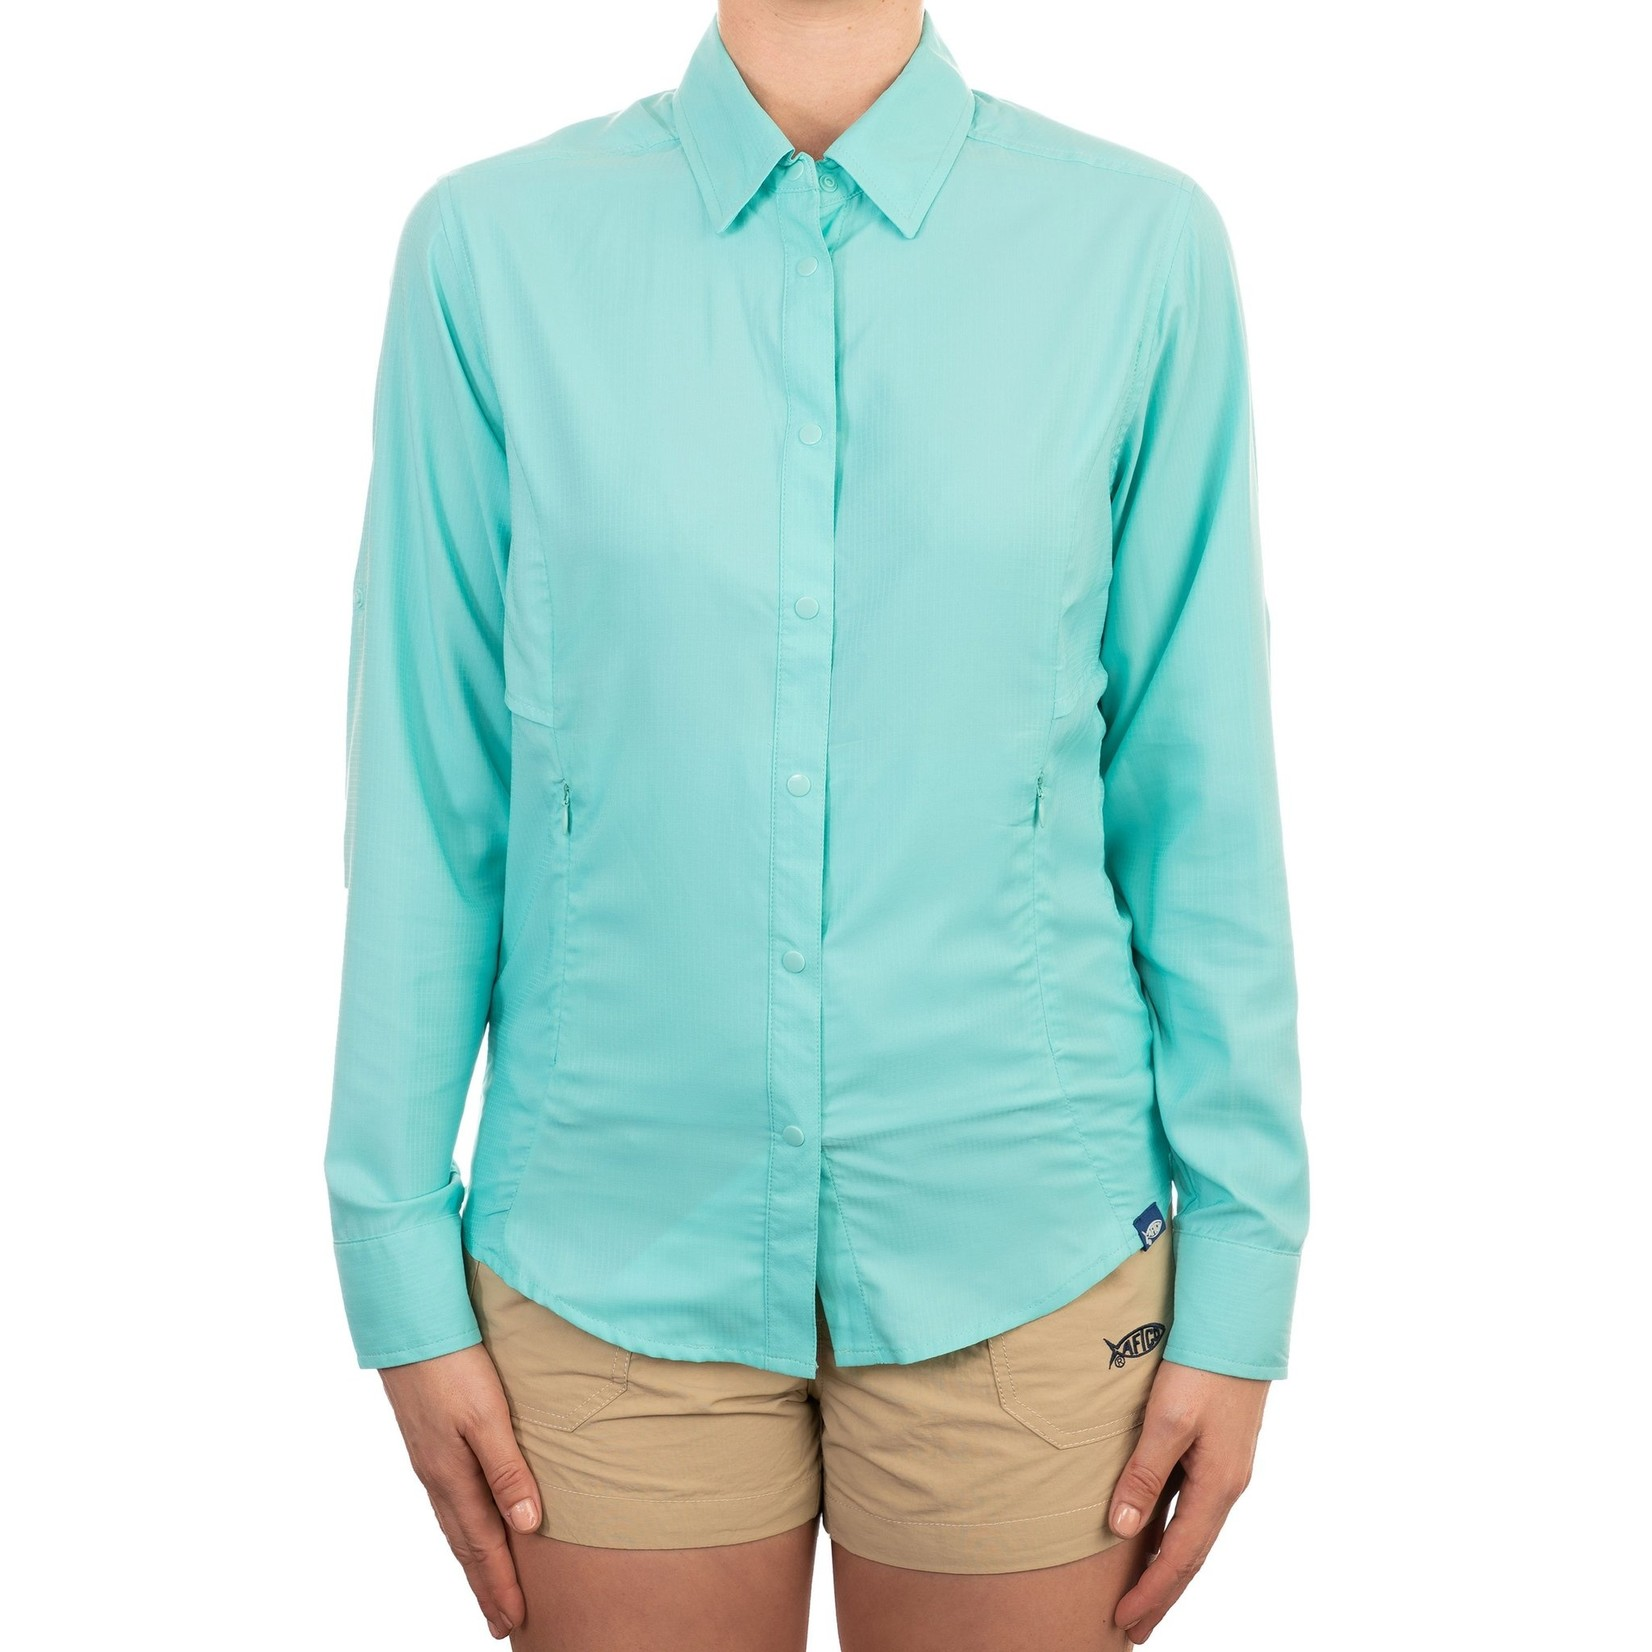 AFTCO WOMEN'S WRANGLE LS TECHNICAL FISHING SHIRT